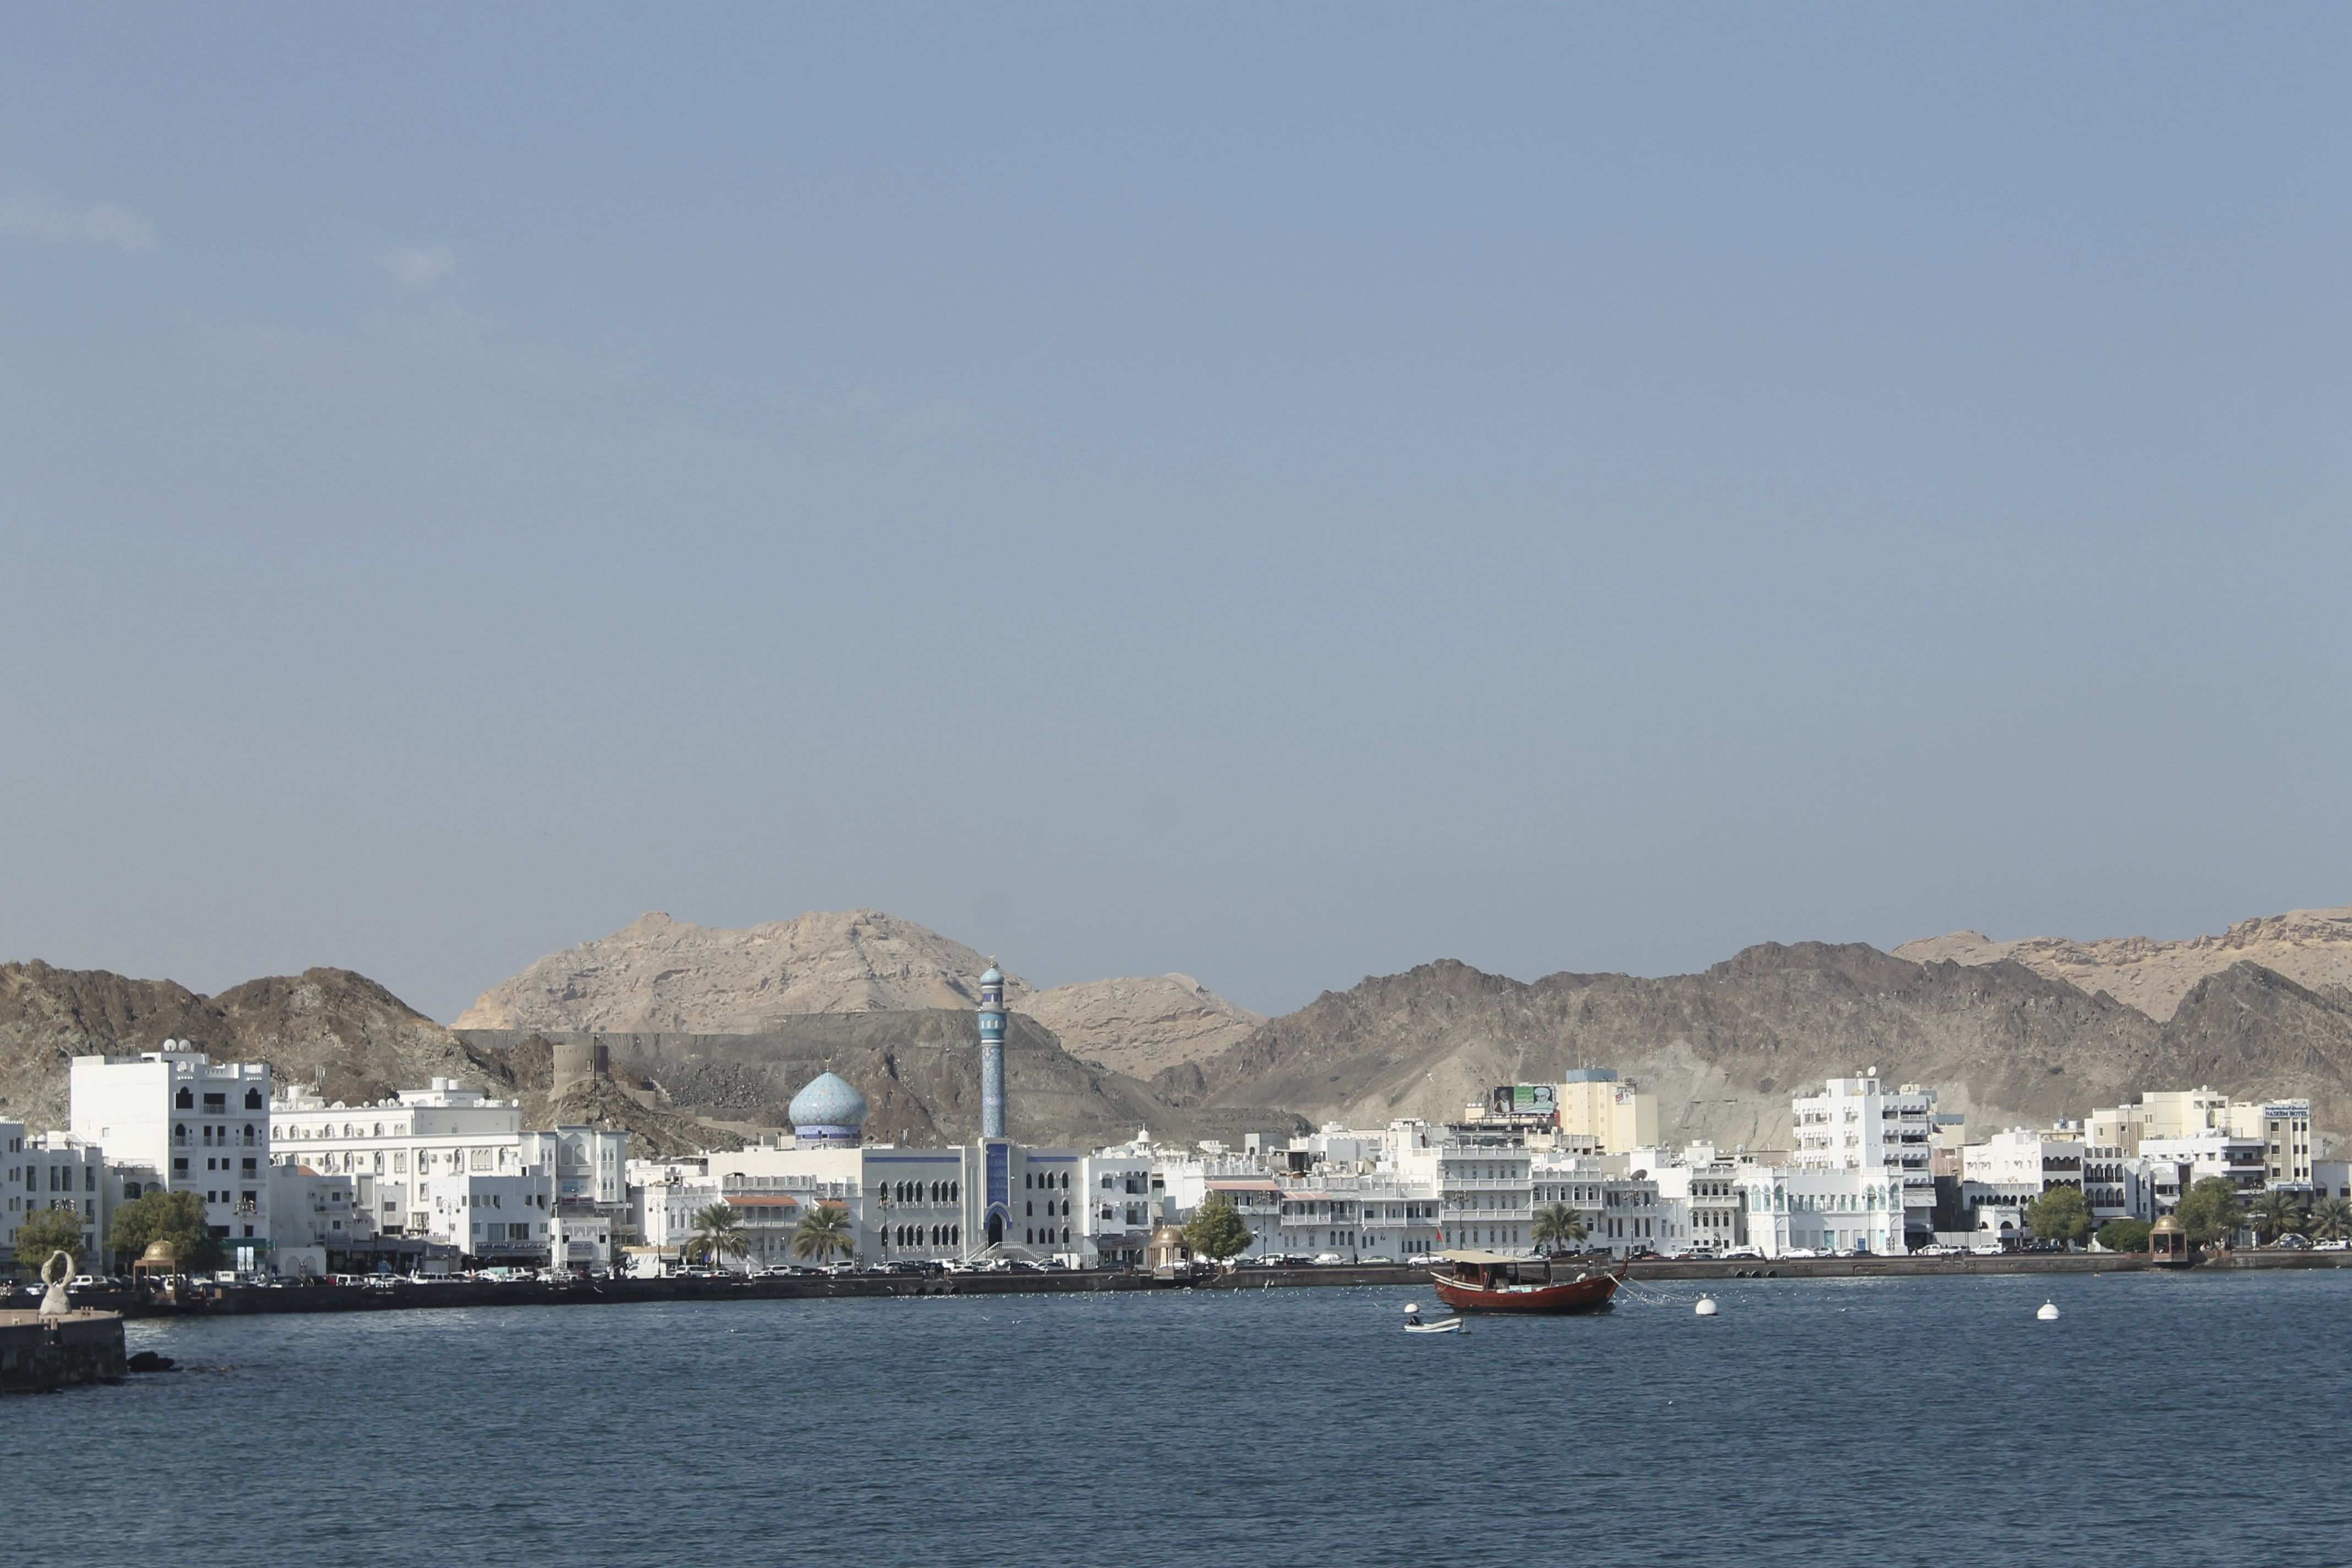 Muscat, capital of Oman | My Travels in the Middle East